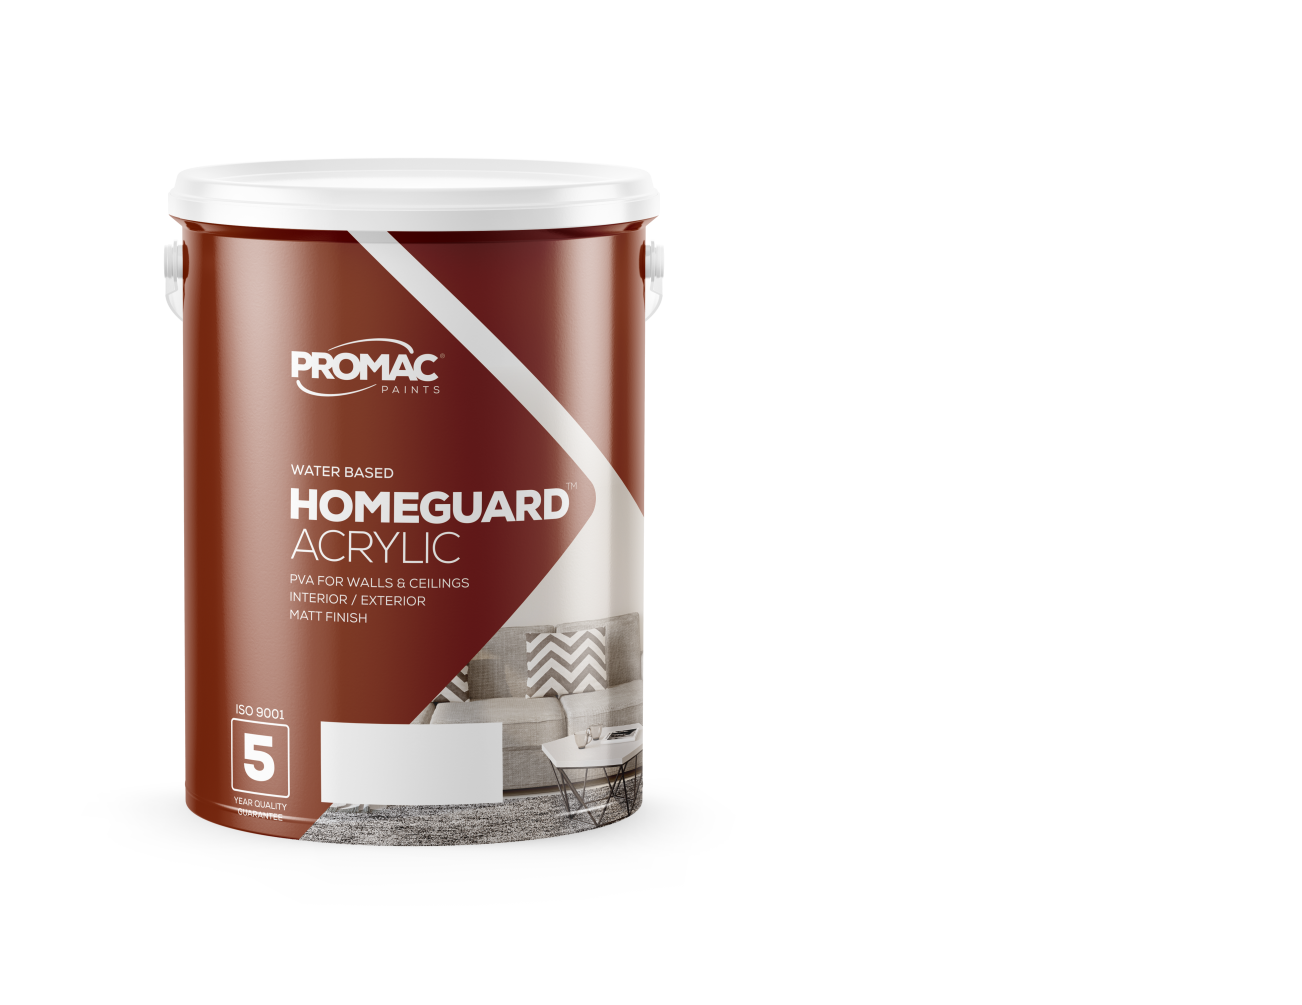 HOMEGUARDACRYLIC - WATER BASEDPromac Homeguard™ Acrylic is water based with a quality matt finish. It has excellent hiding power with some washability for interior and exterior areas. It is meant for application to both primed and sound previously painted areas.